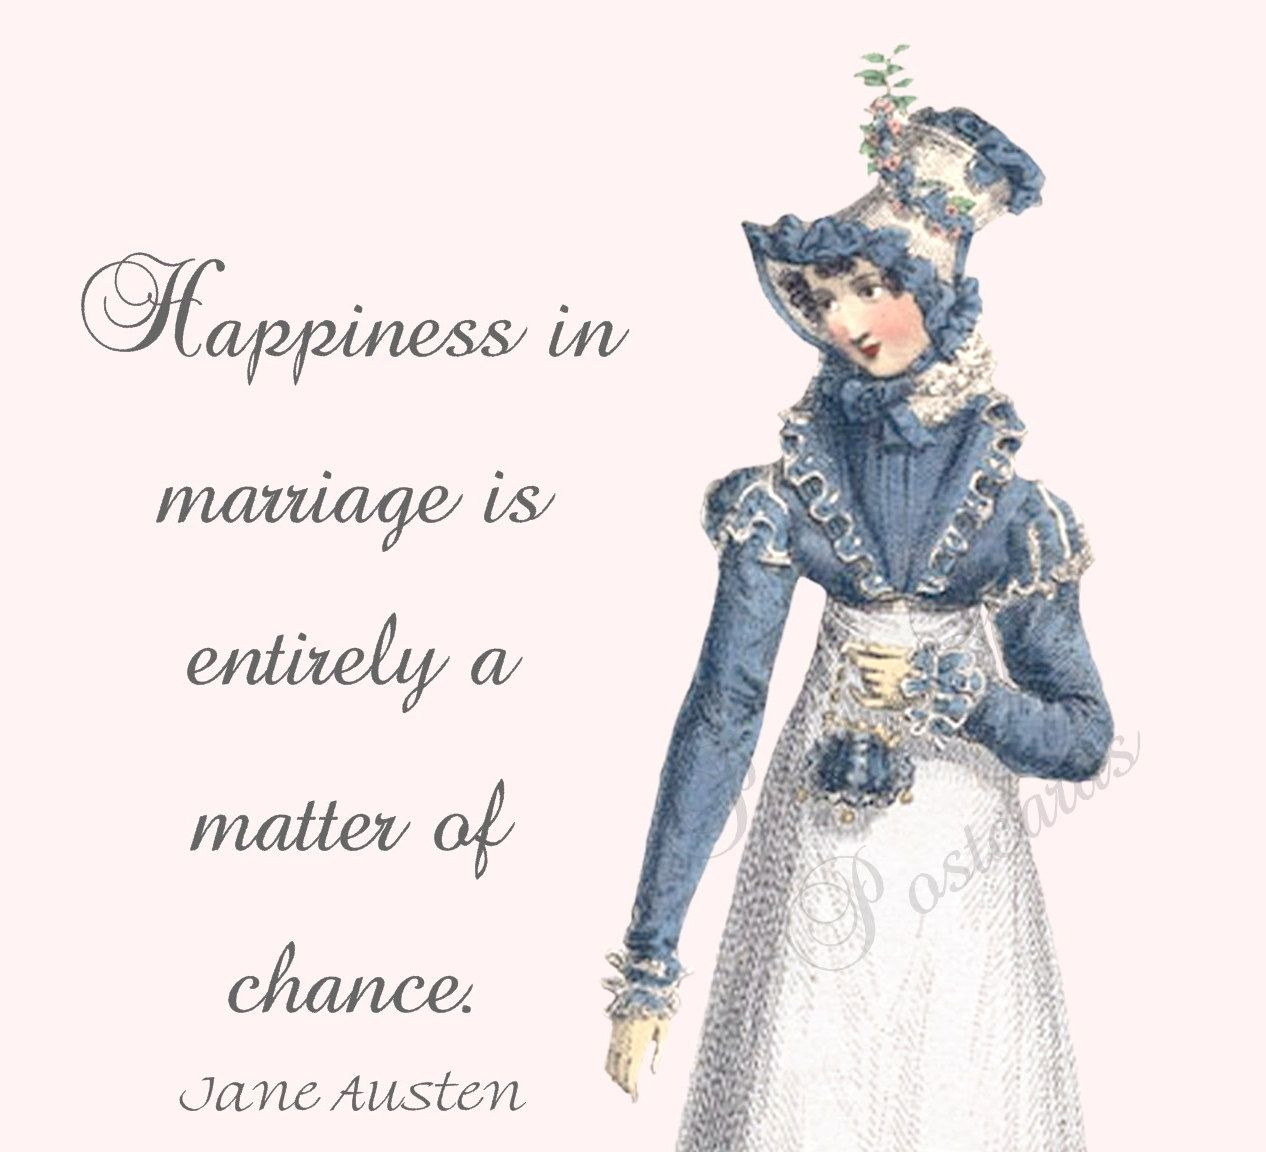 Quotes Jane Austen Jane Auten Quotes  On Sale Jane Austen Quotes  Happiness In